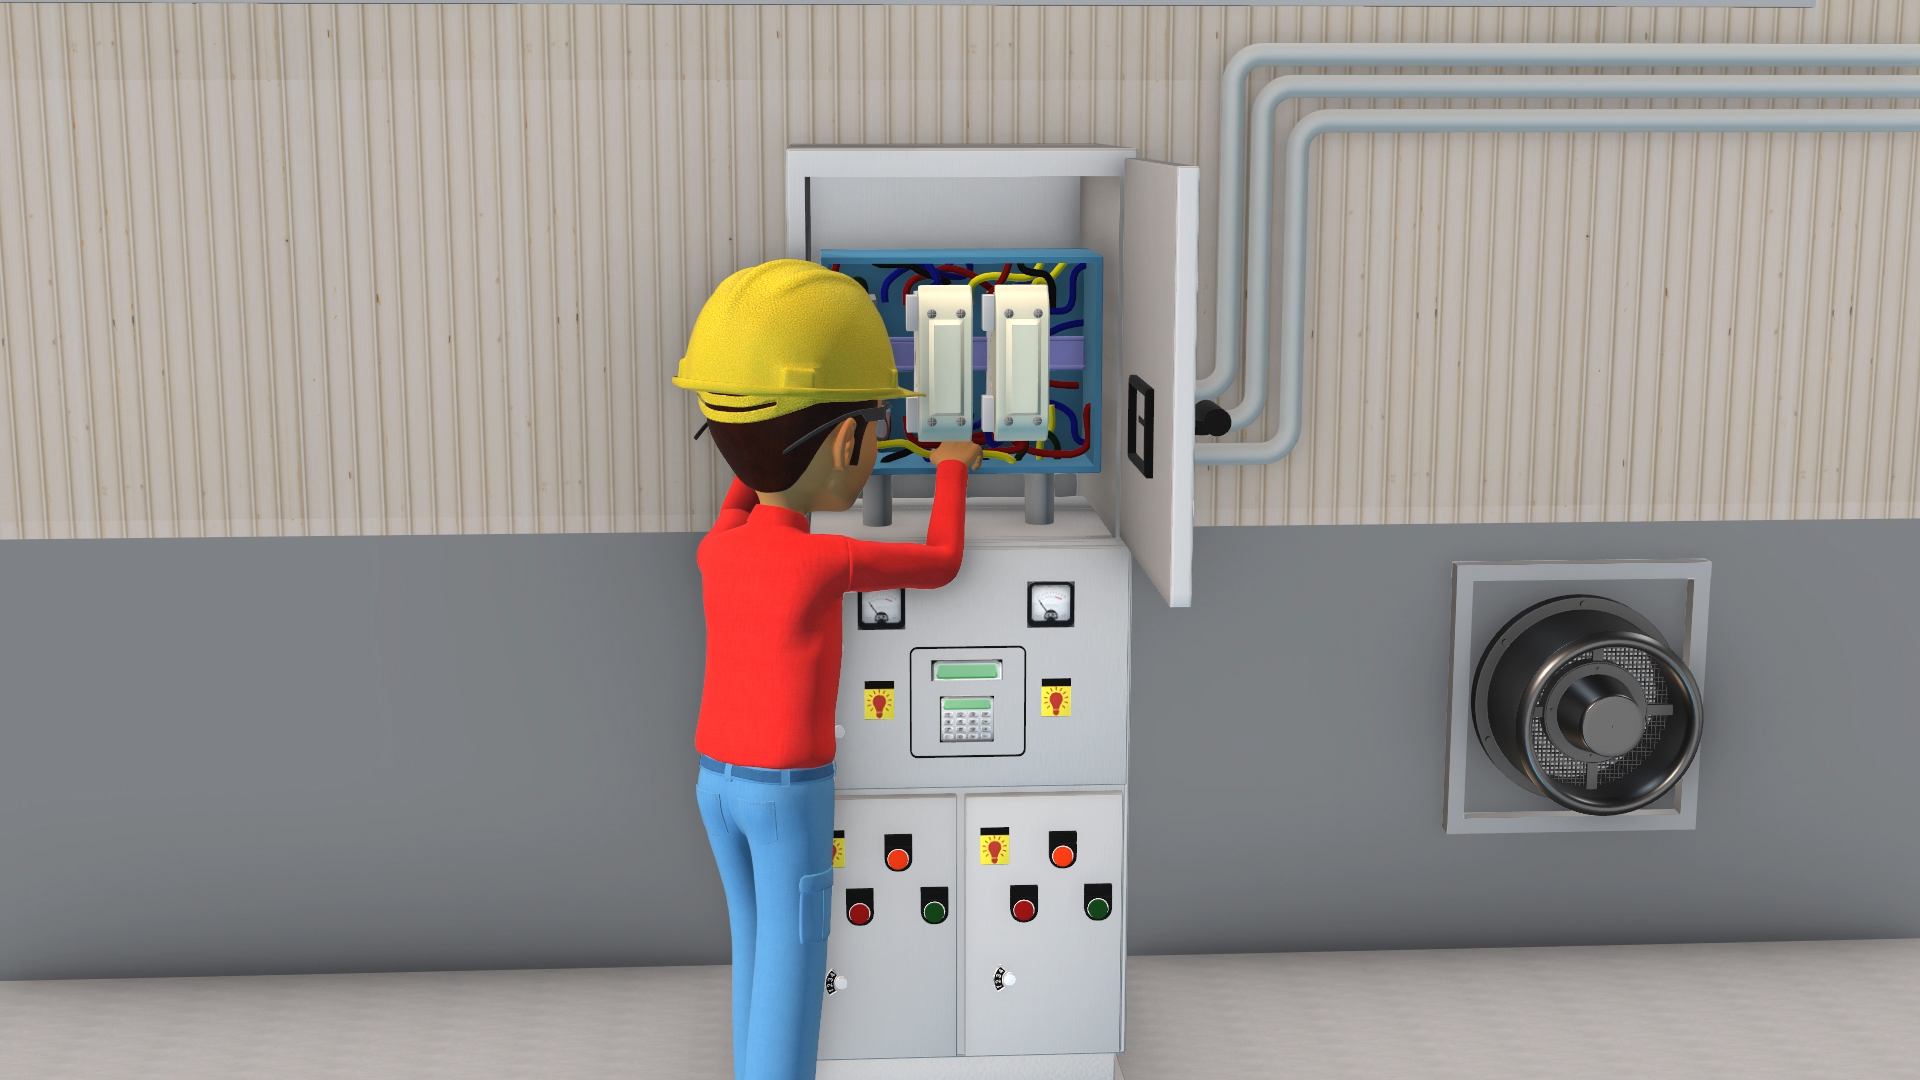 Electrical Safety 2.0